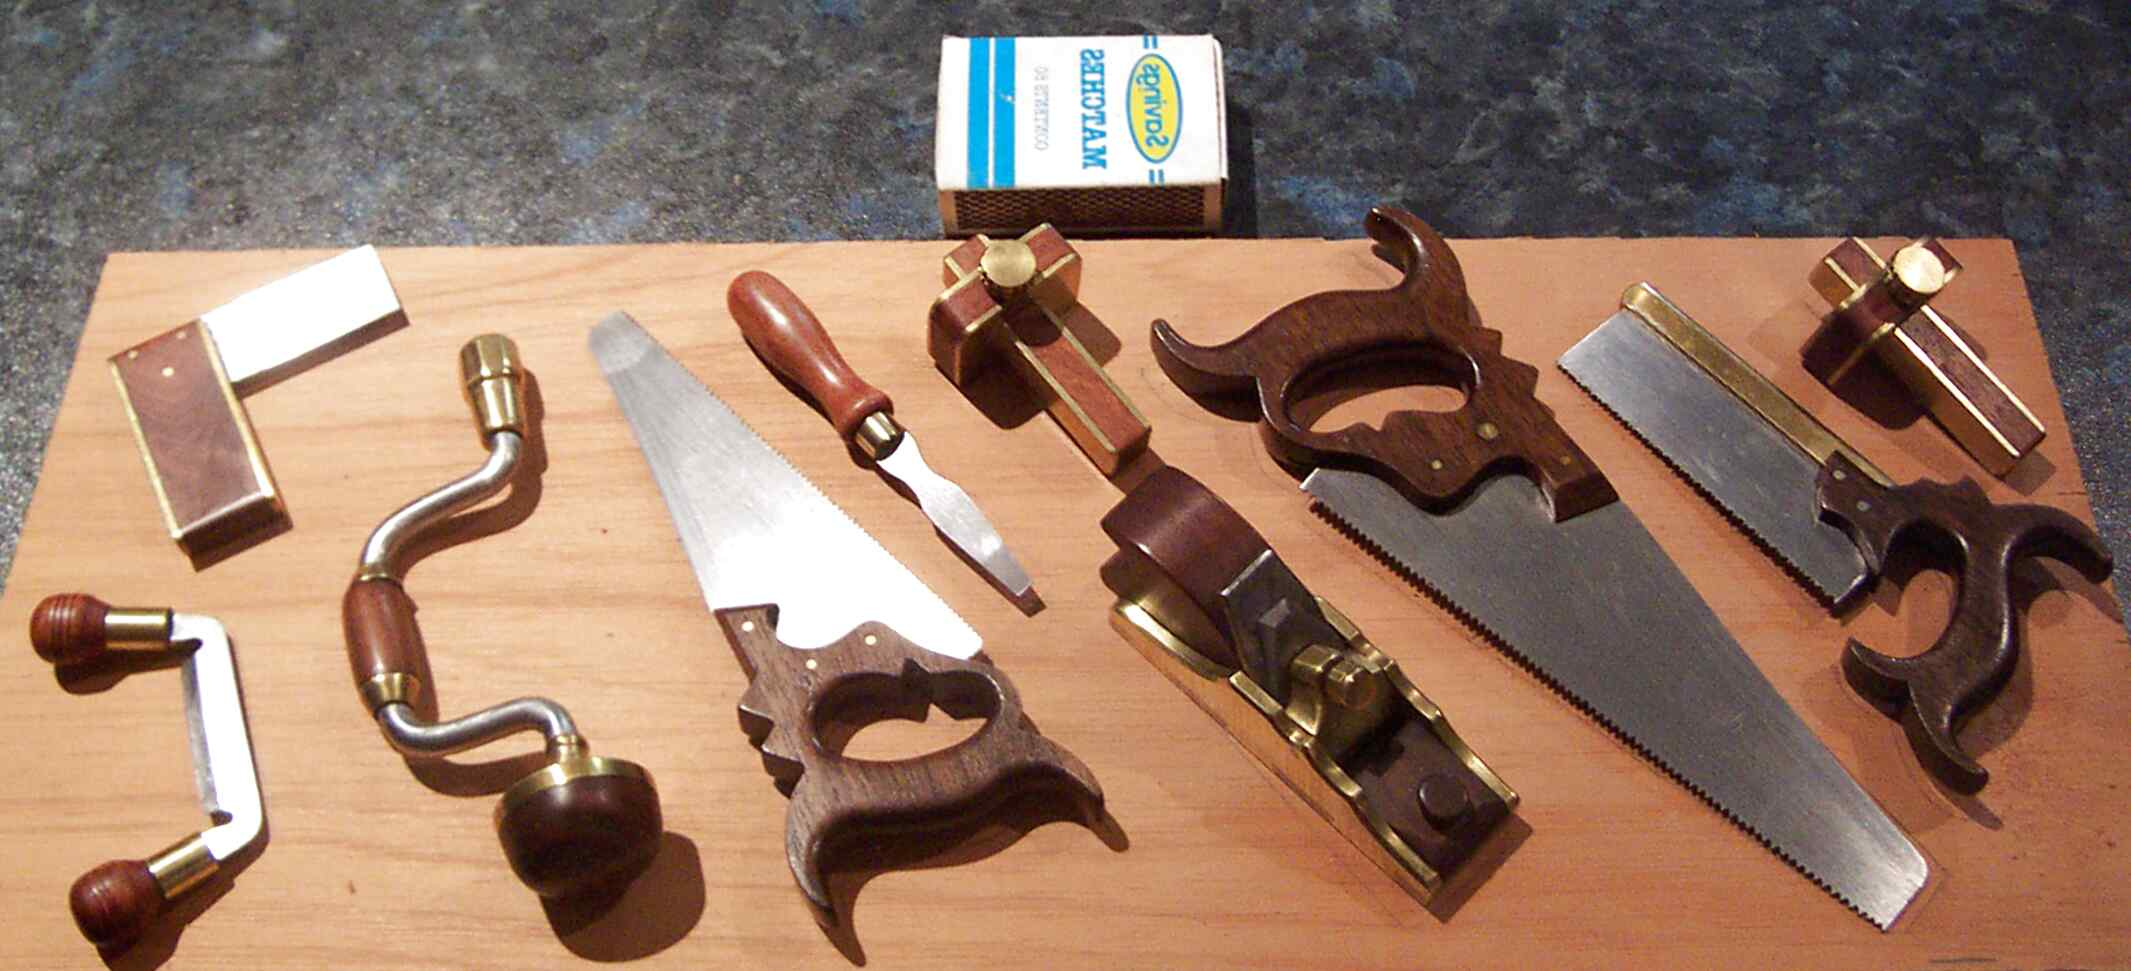 Woodworking Tools for sale in UK View 73 bargains